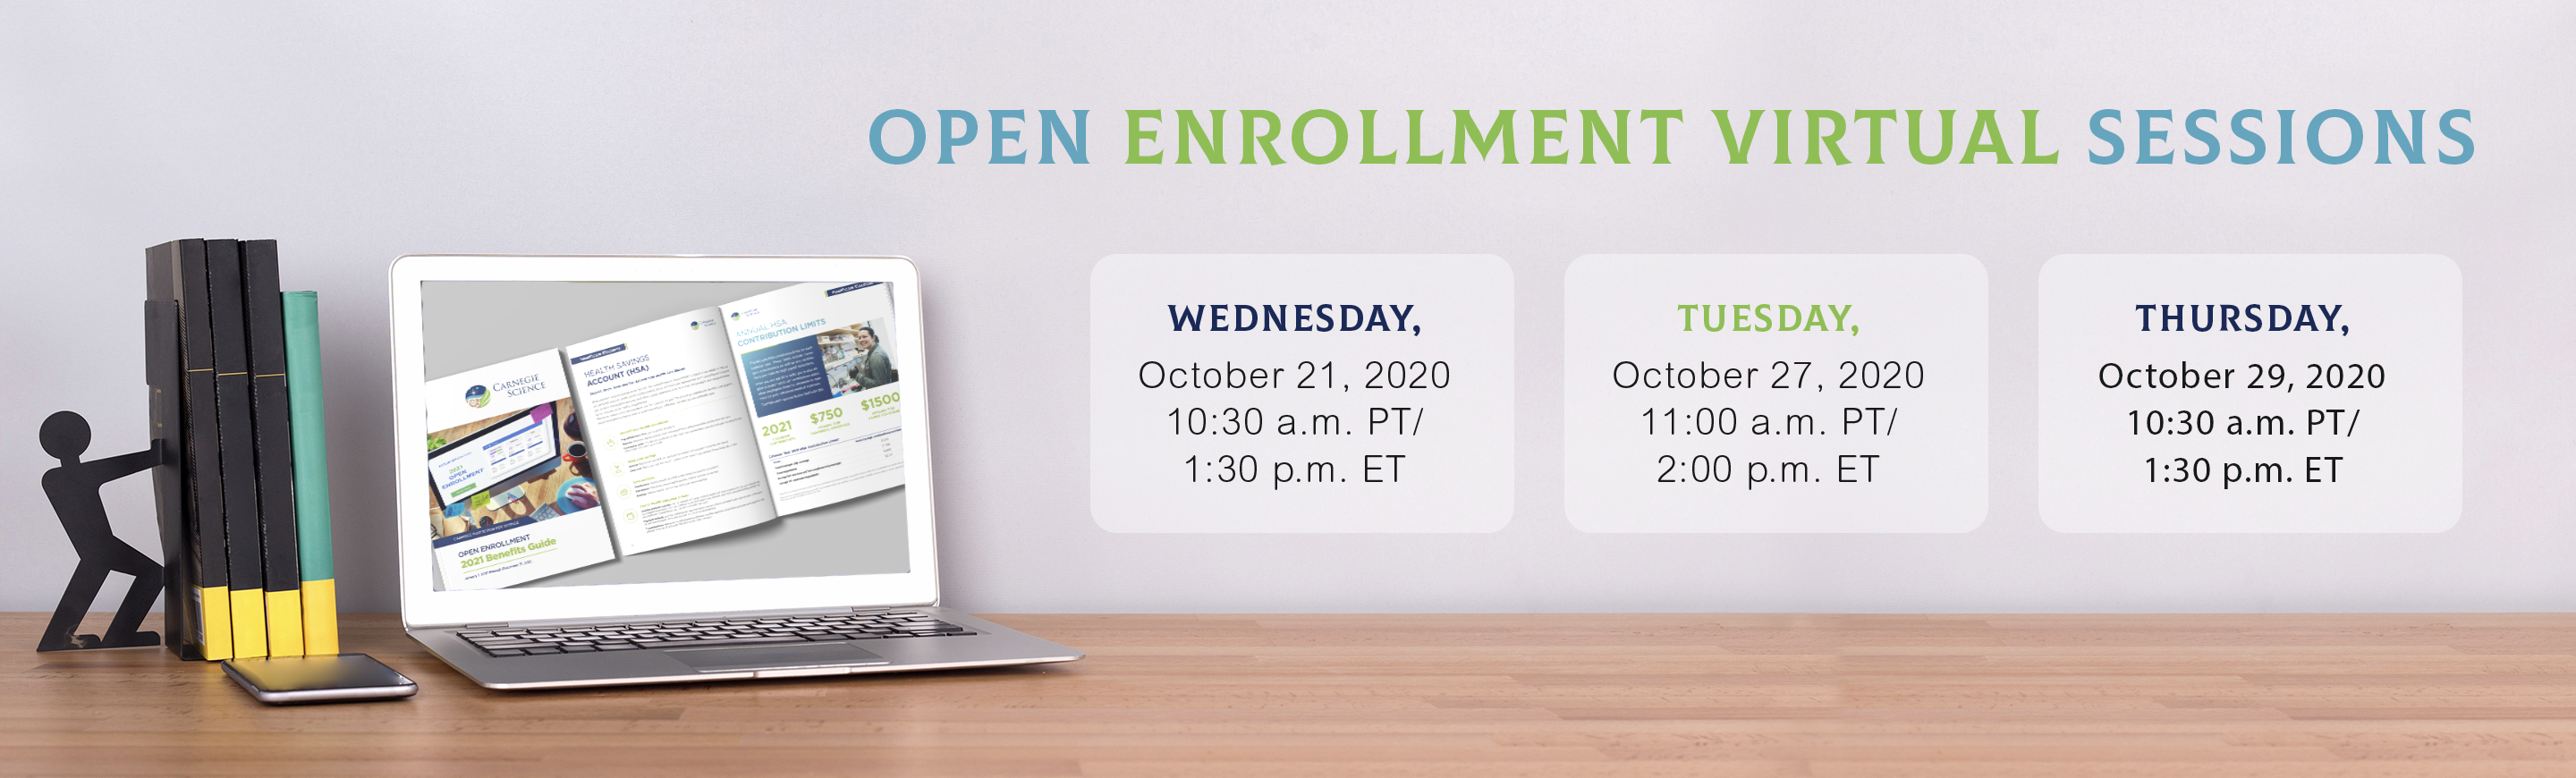 open enrollment save the date